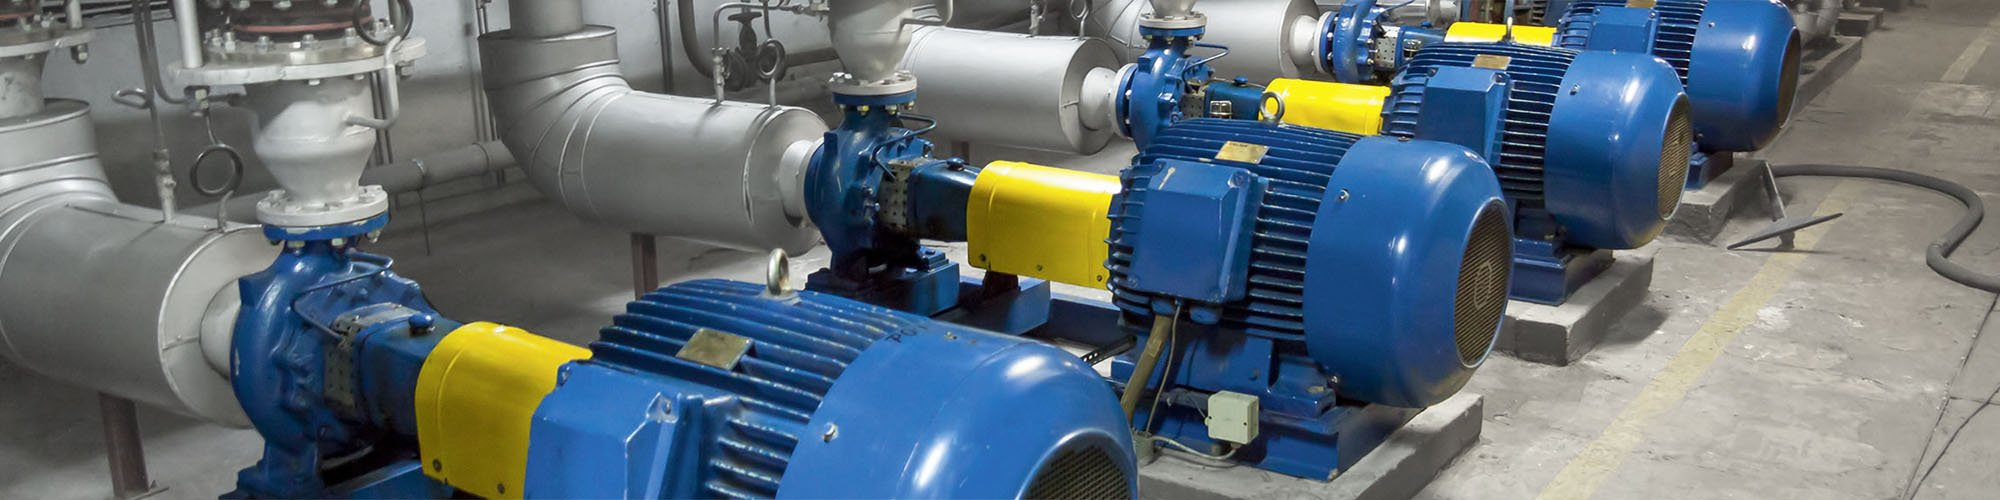 Continuous monitoring of de-energised loads and conductors